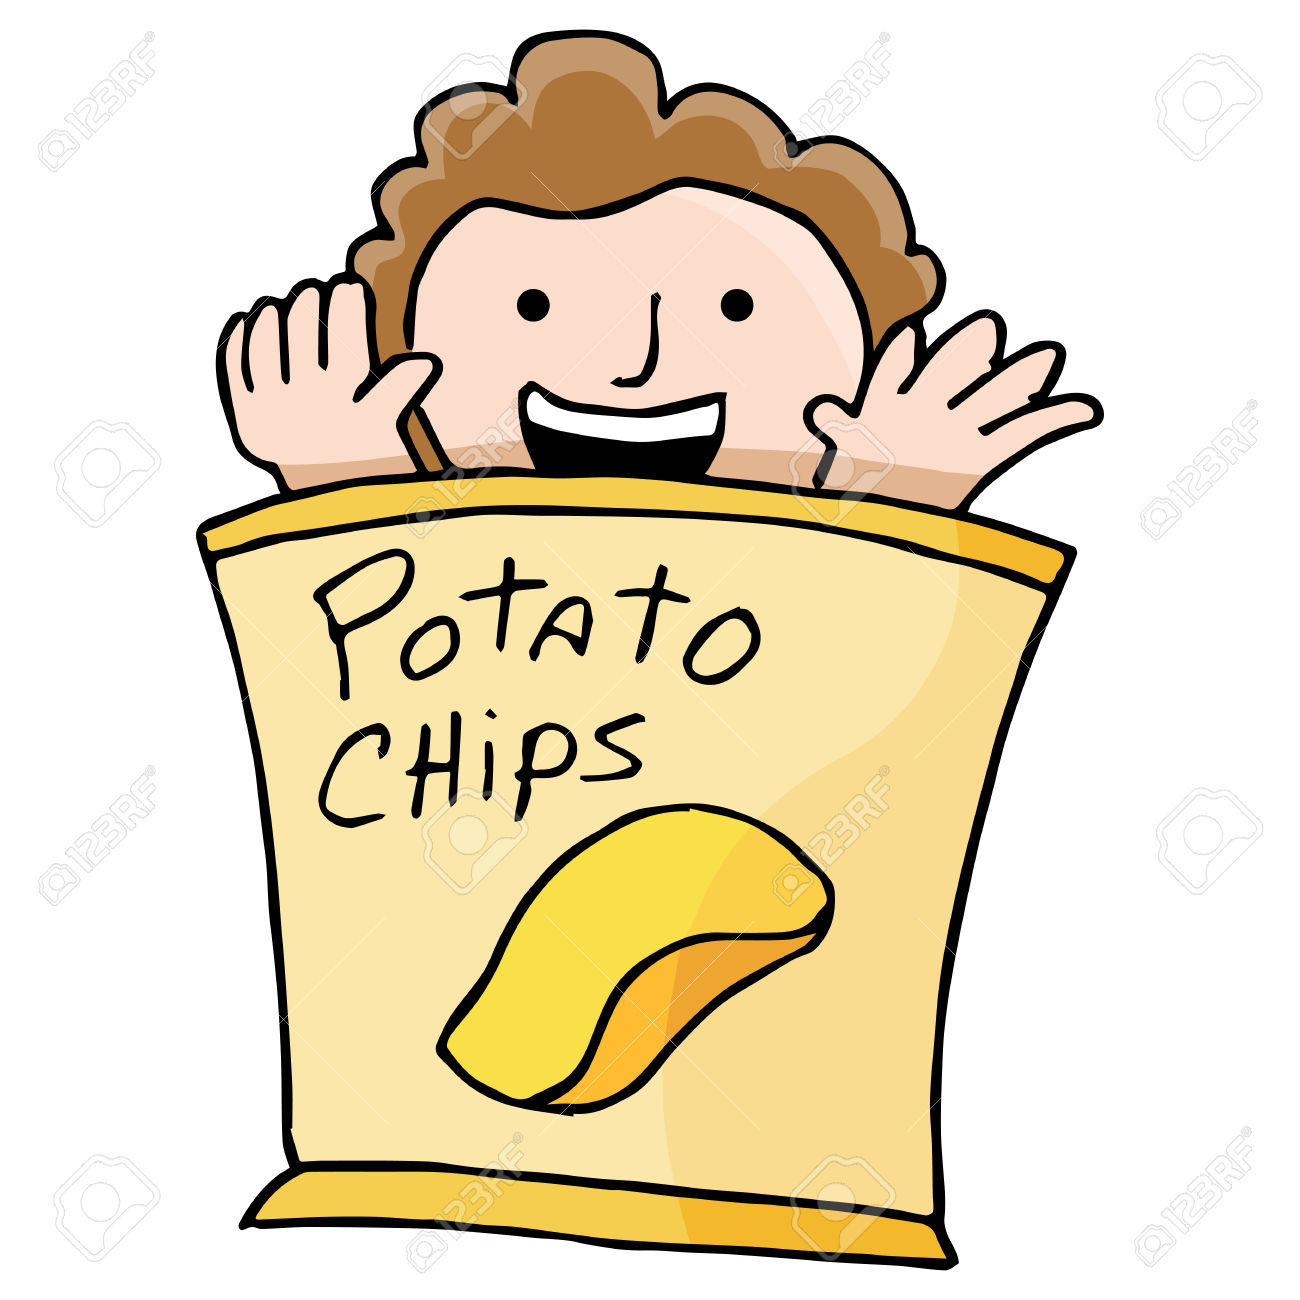 1300x1300 Potato Chips Clipart Bad Food